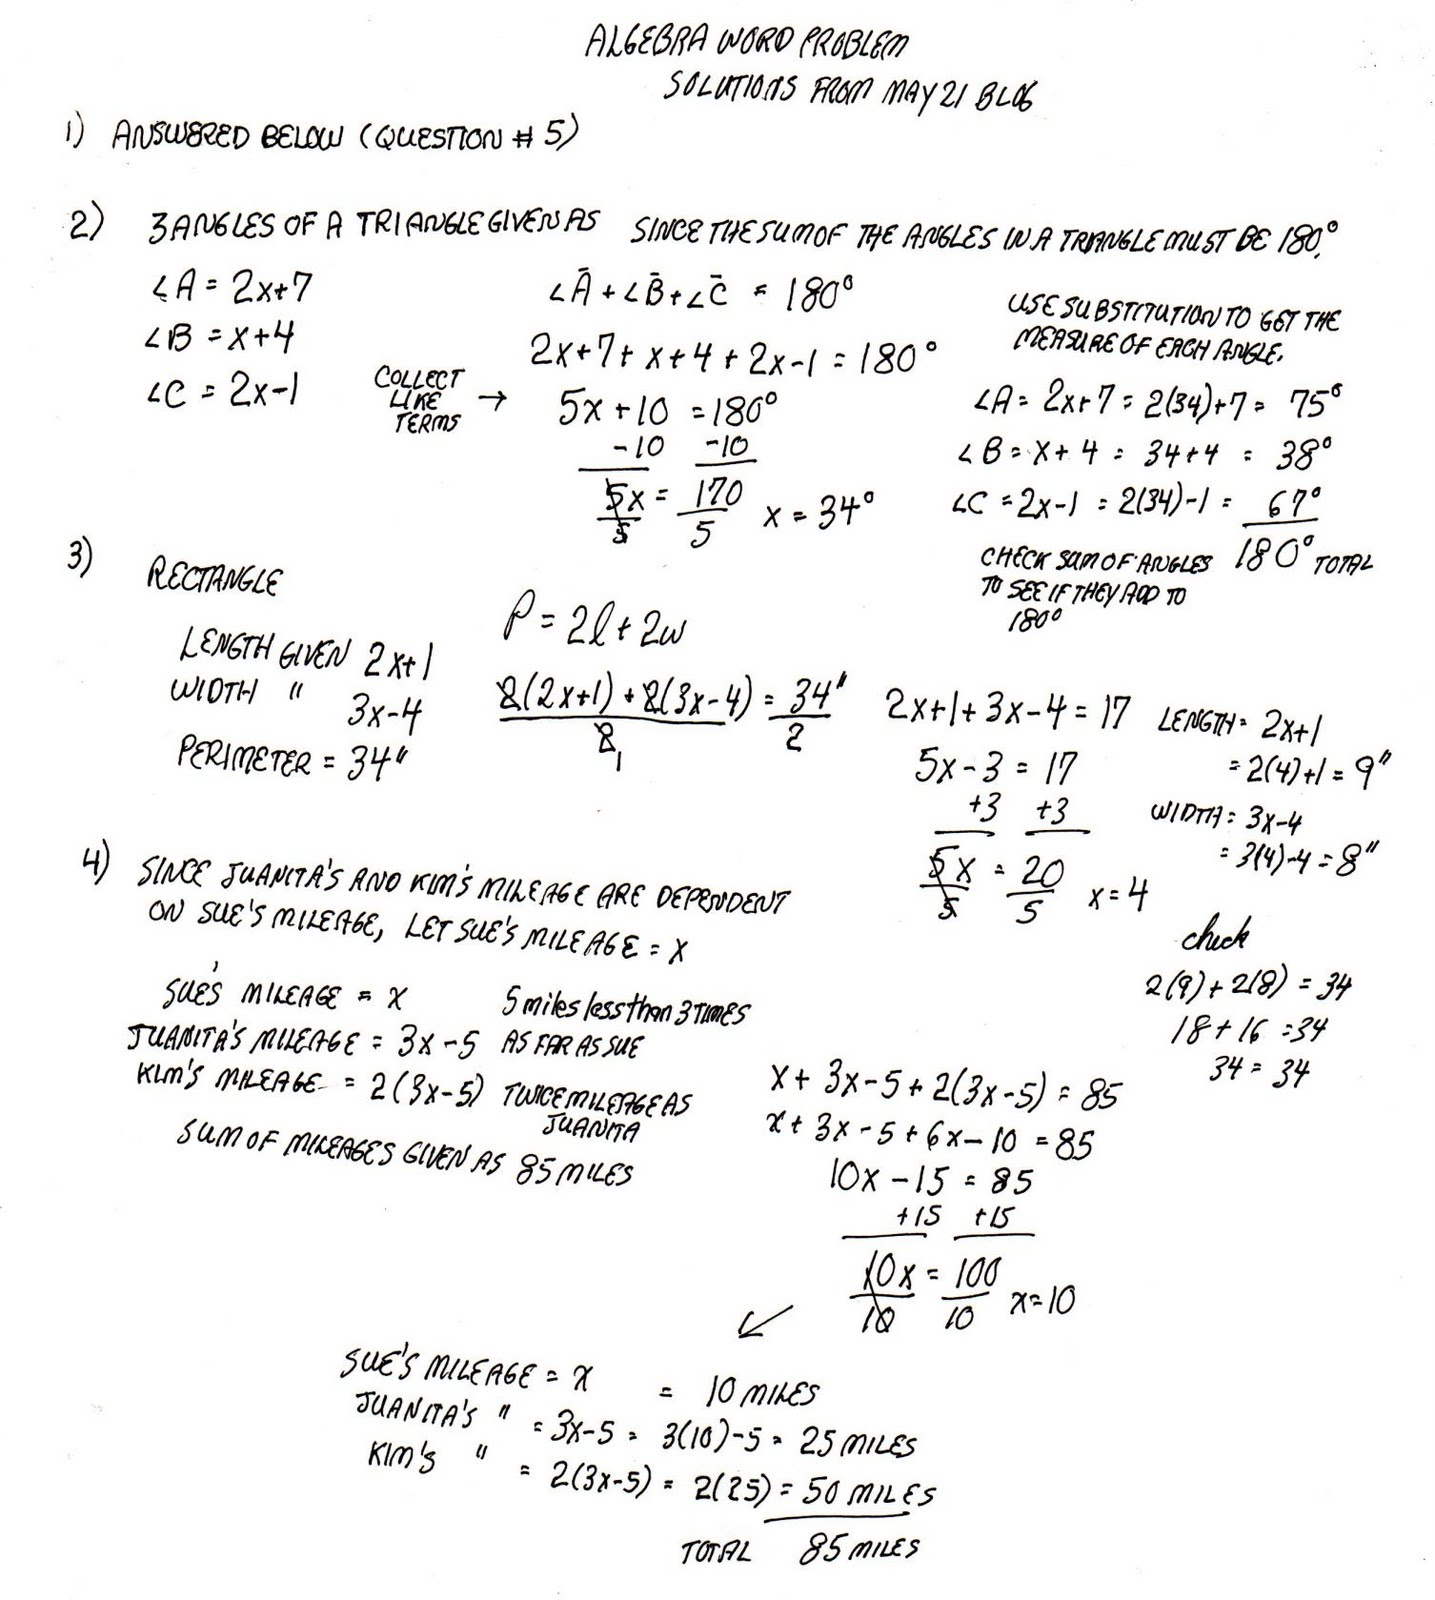 worksheet Algebra Word Problems cobb adult ed math solutions to may 21st algebra word problems problems